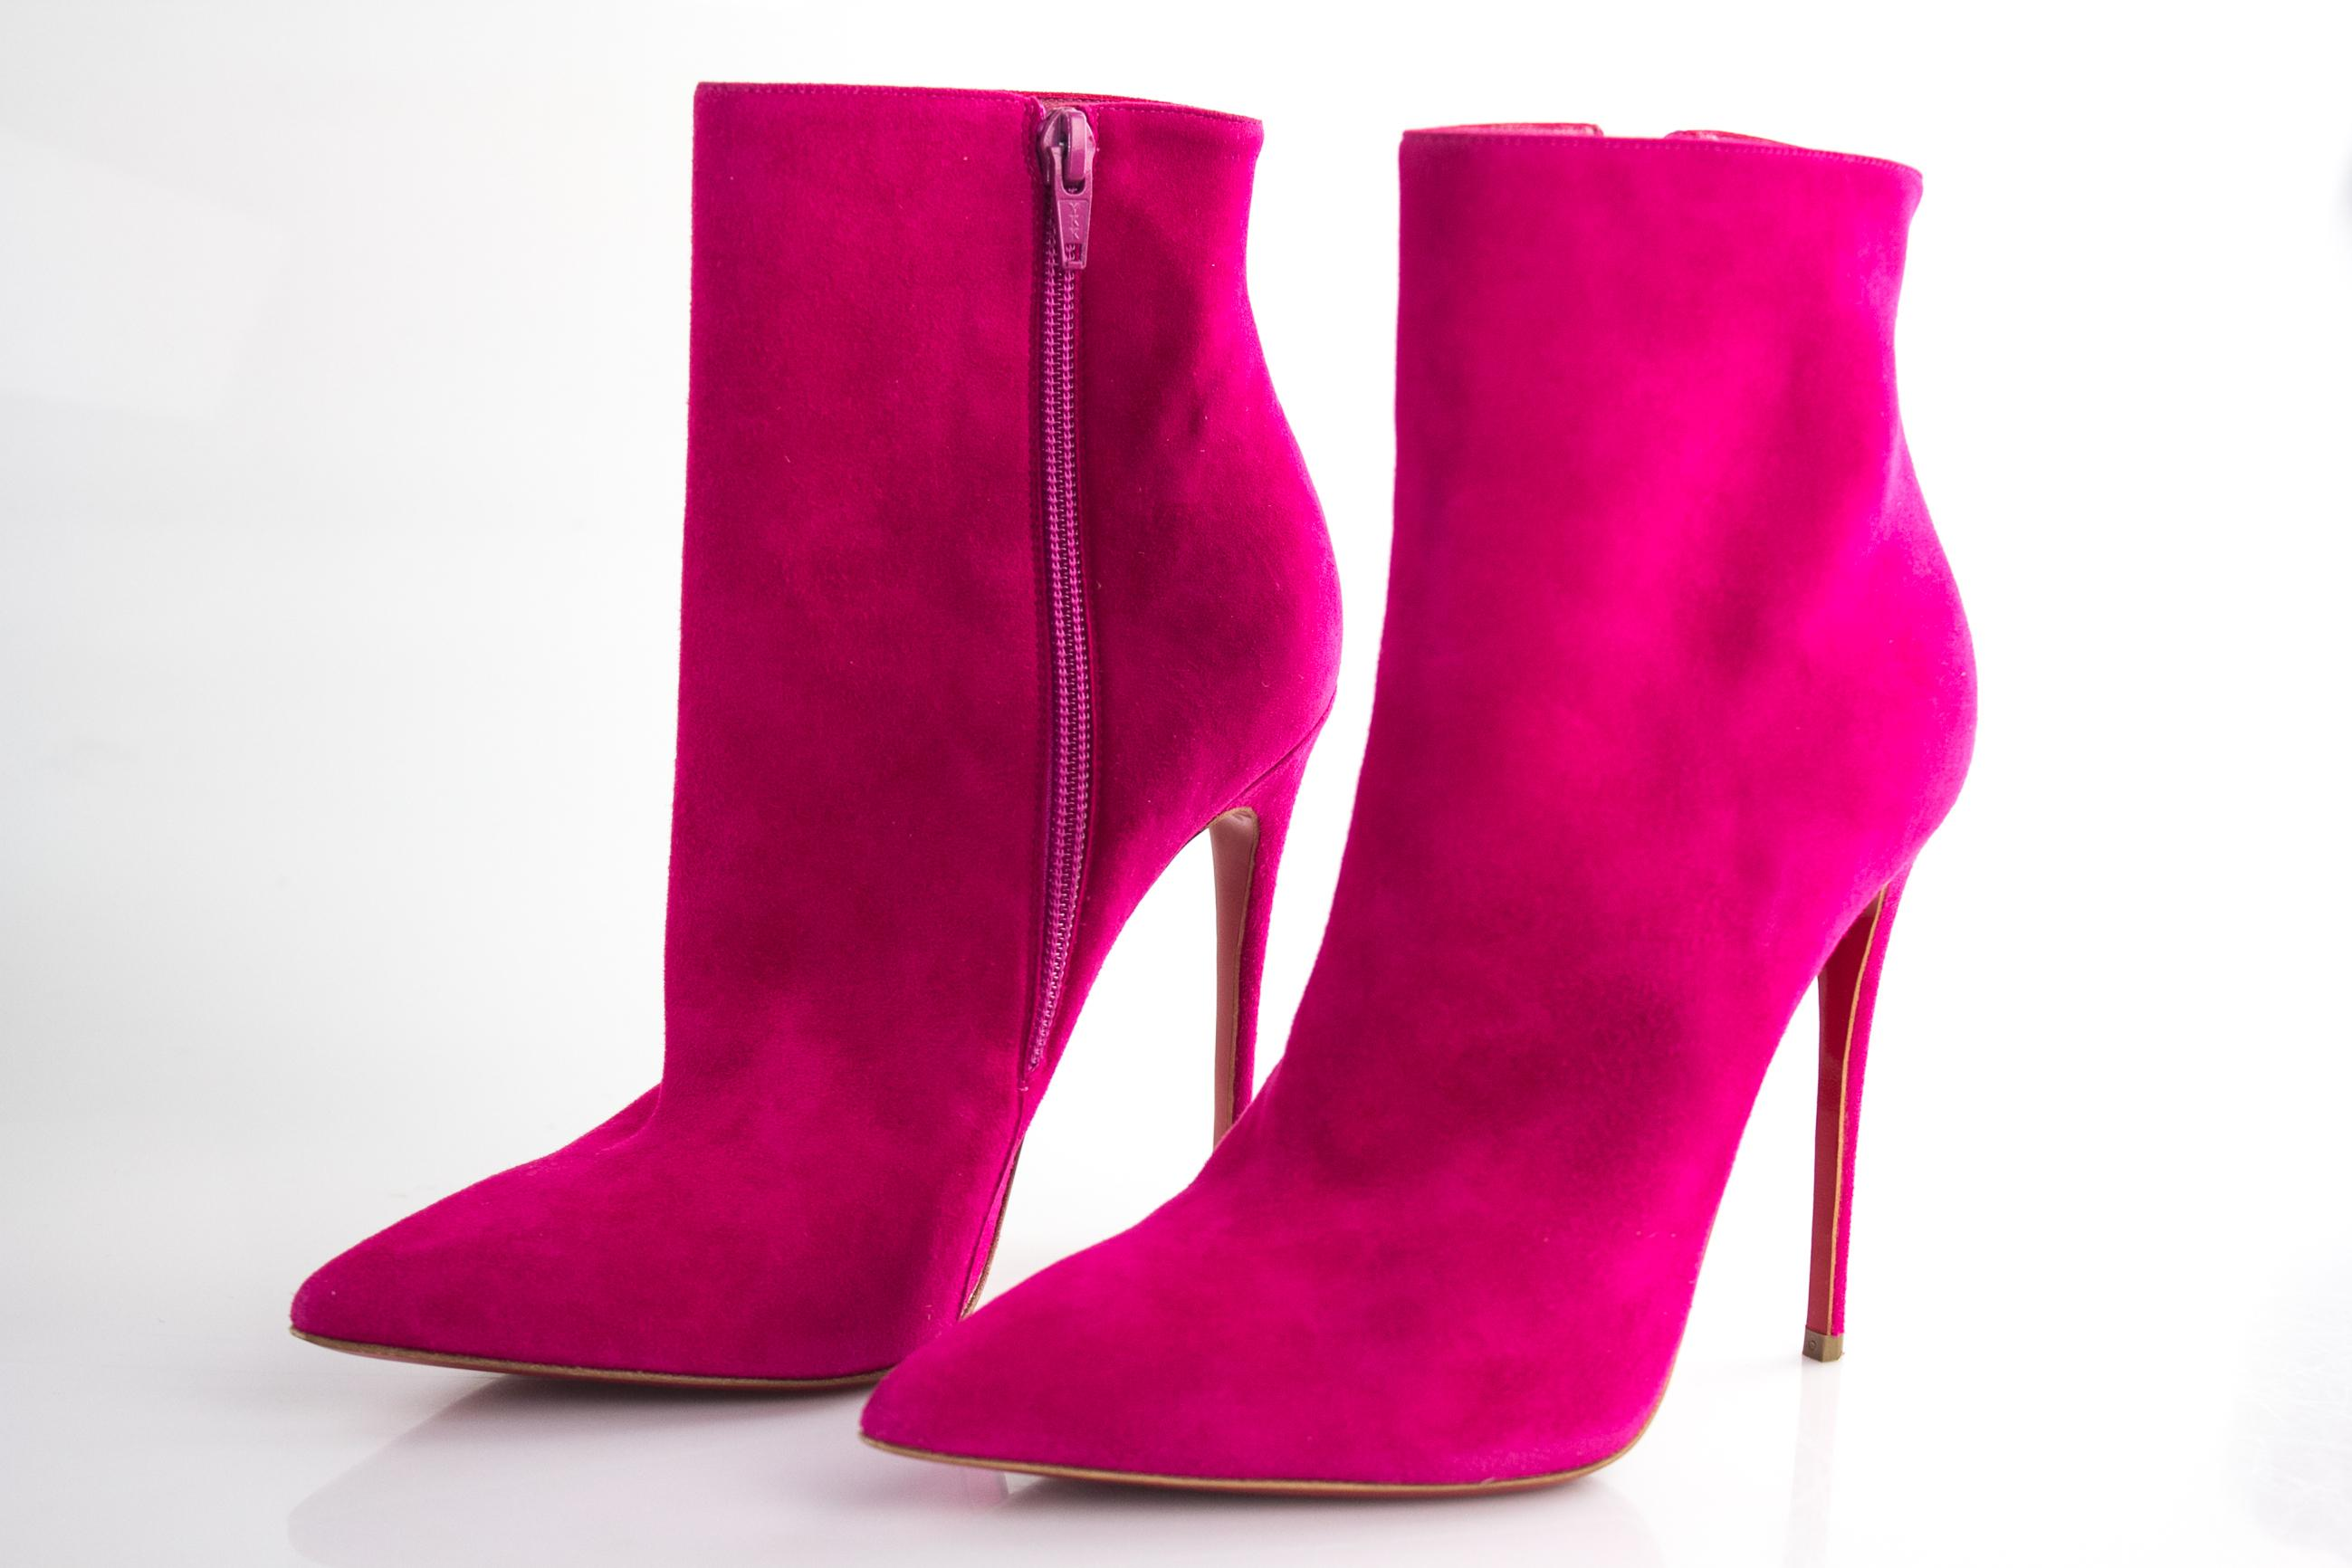 8871a6fb213 ... Christian Louboutin Pink So So So Kate 100 Boots Booties Size EU 37.5 ( Approx ...